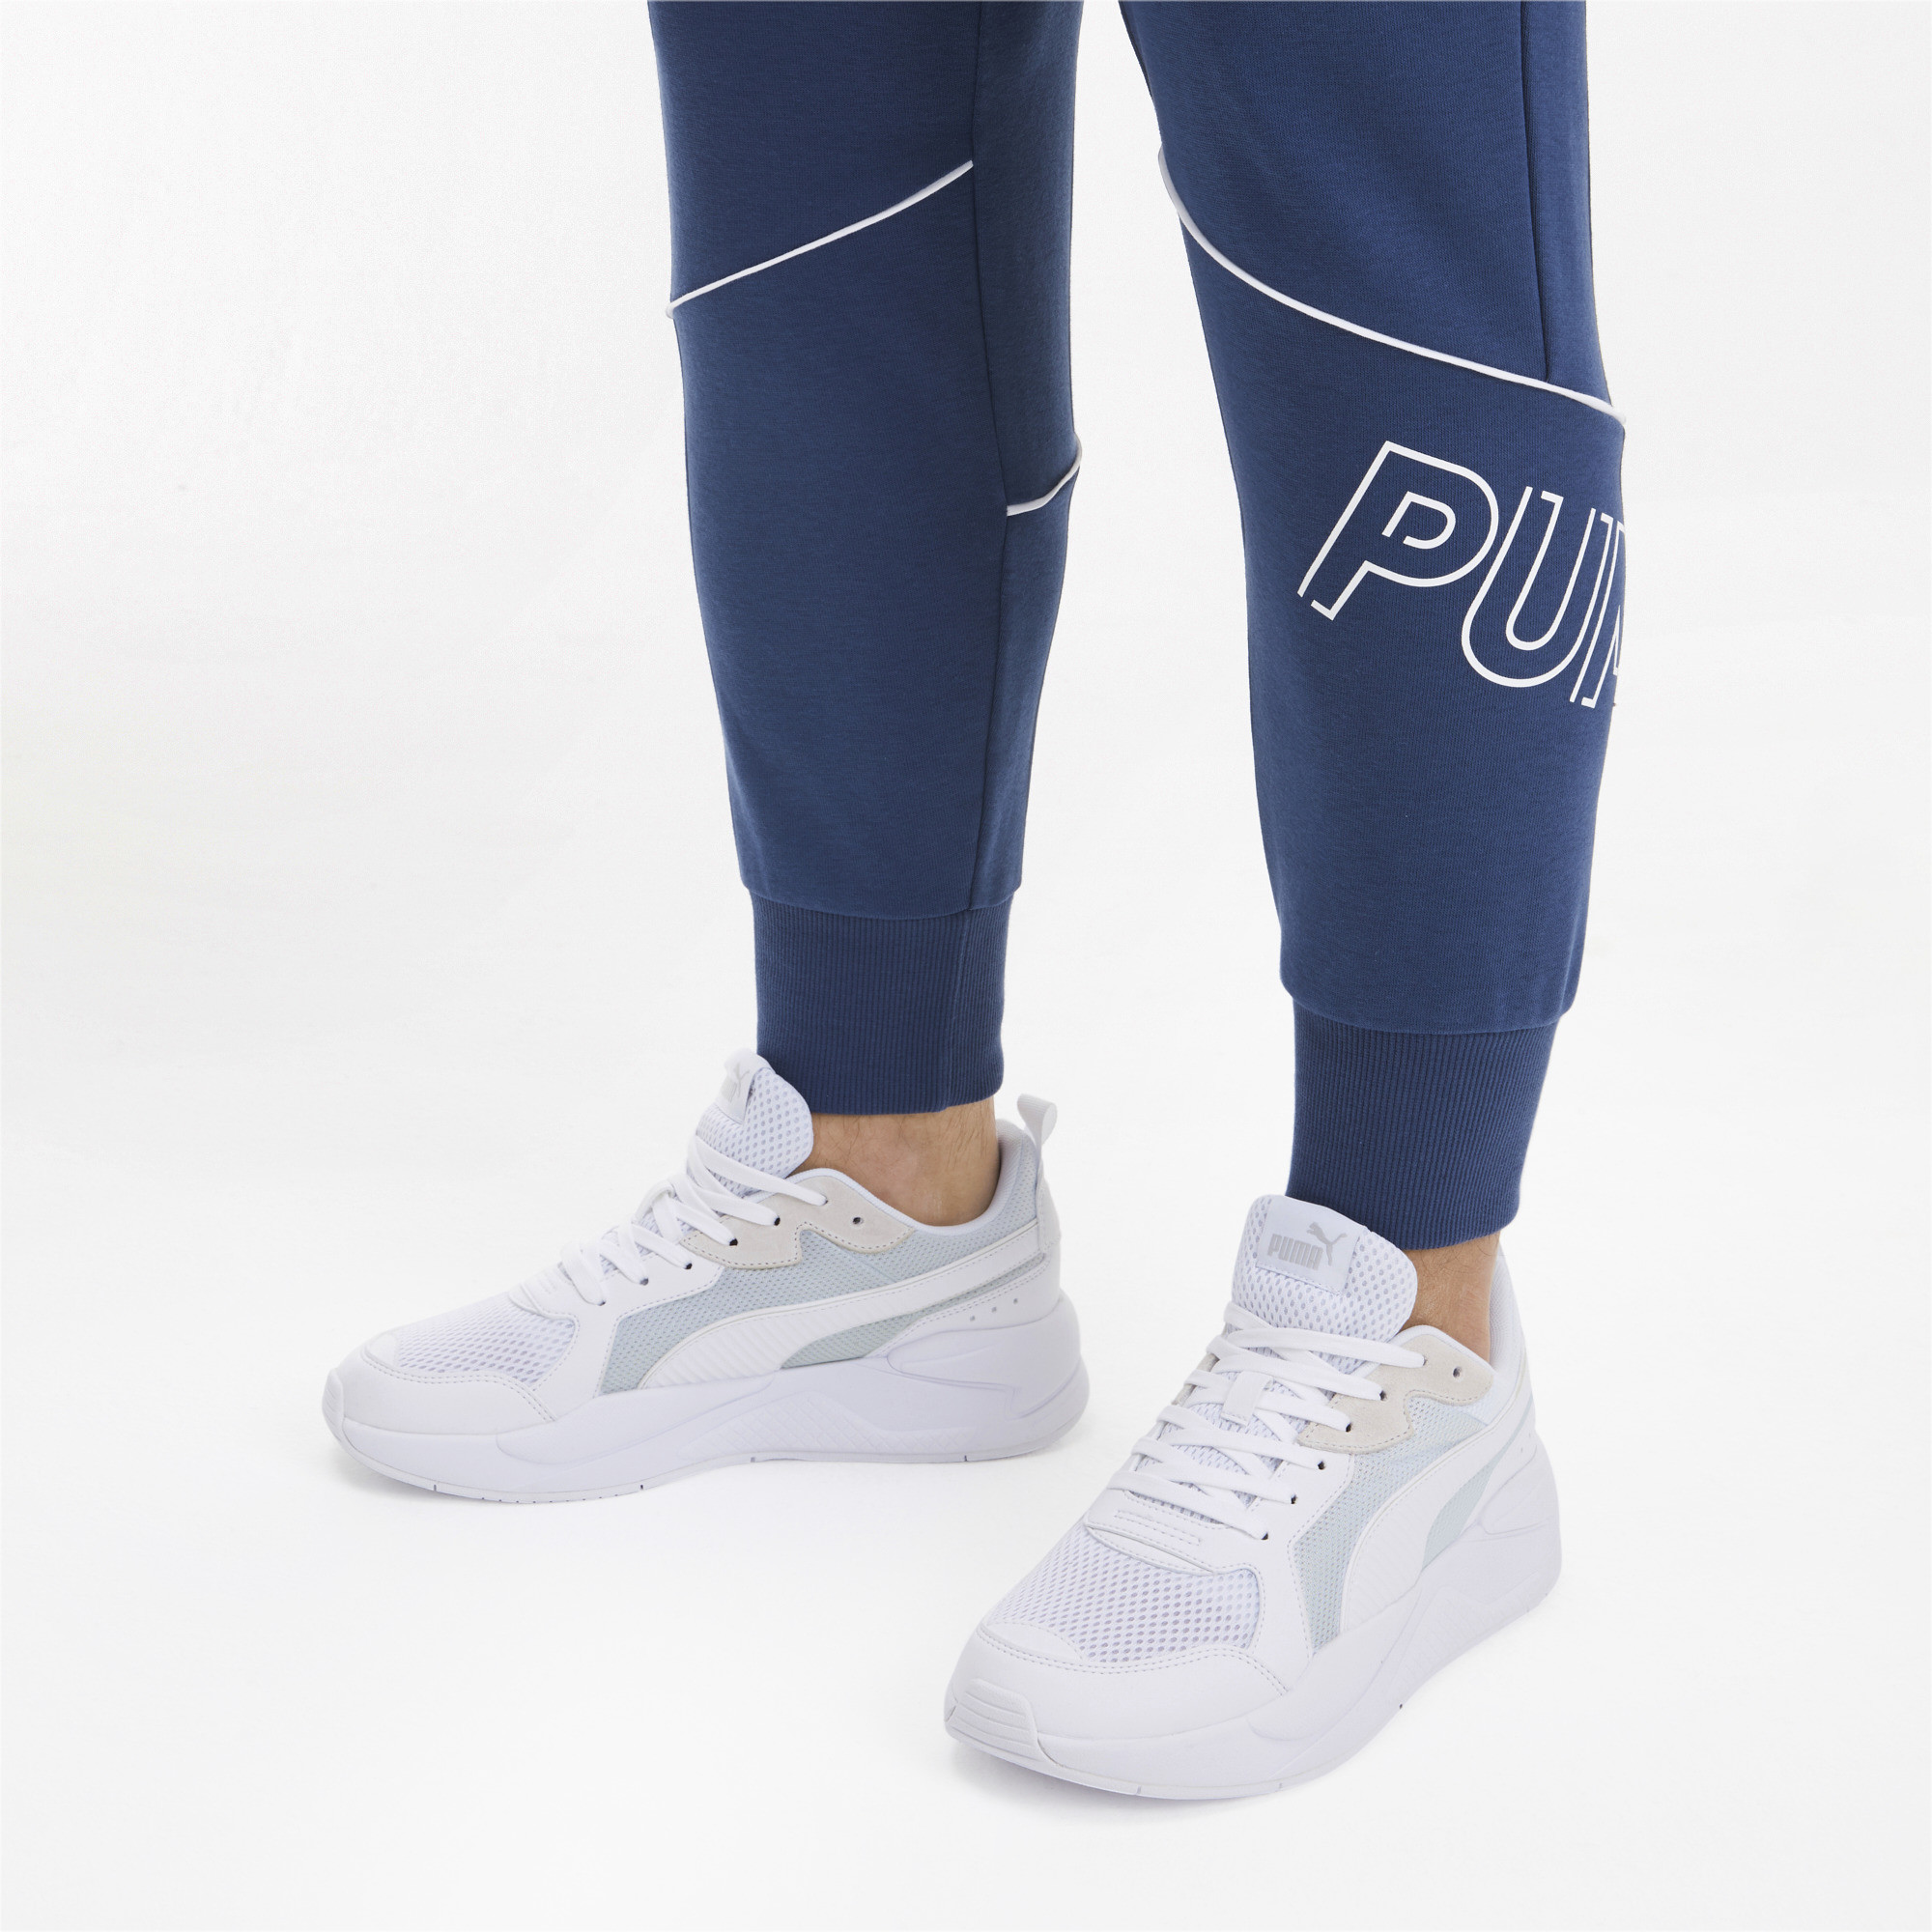 PUMA-Men-039-s-X-RAY-Sneakers thumbnail 20